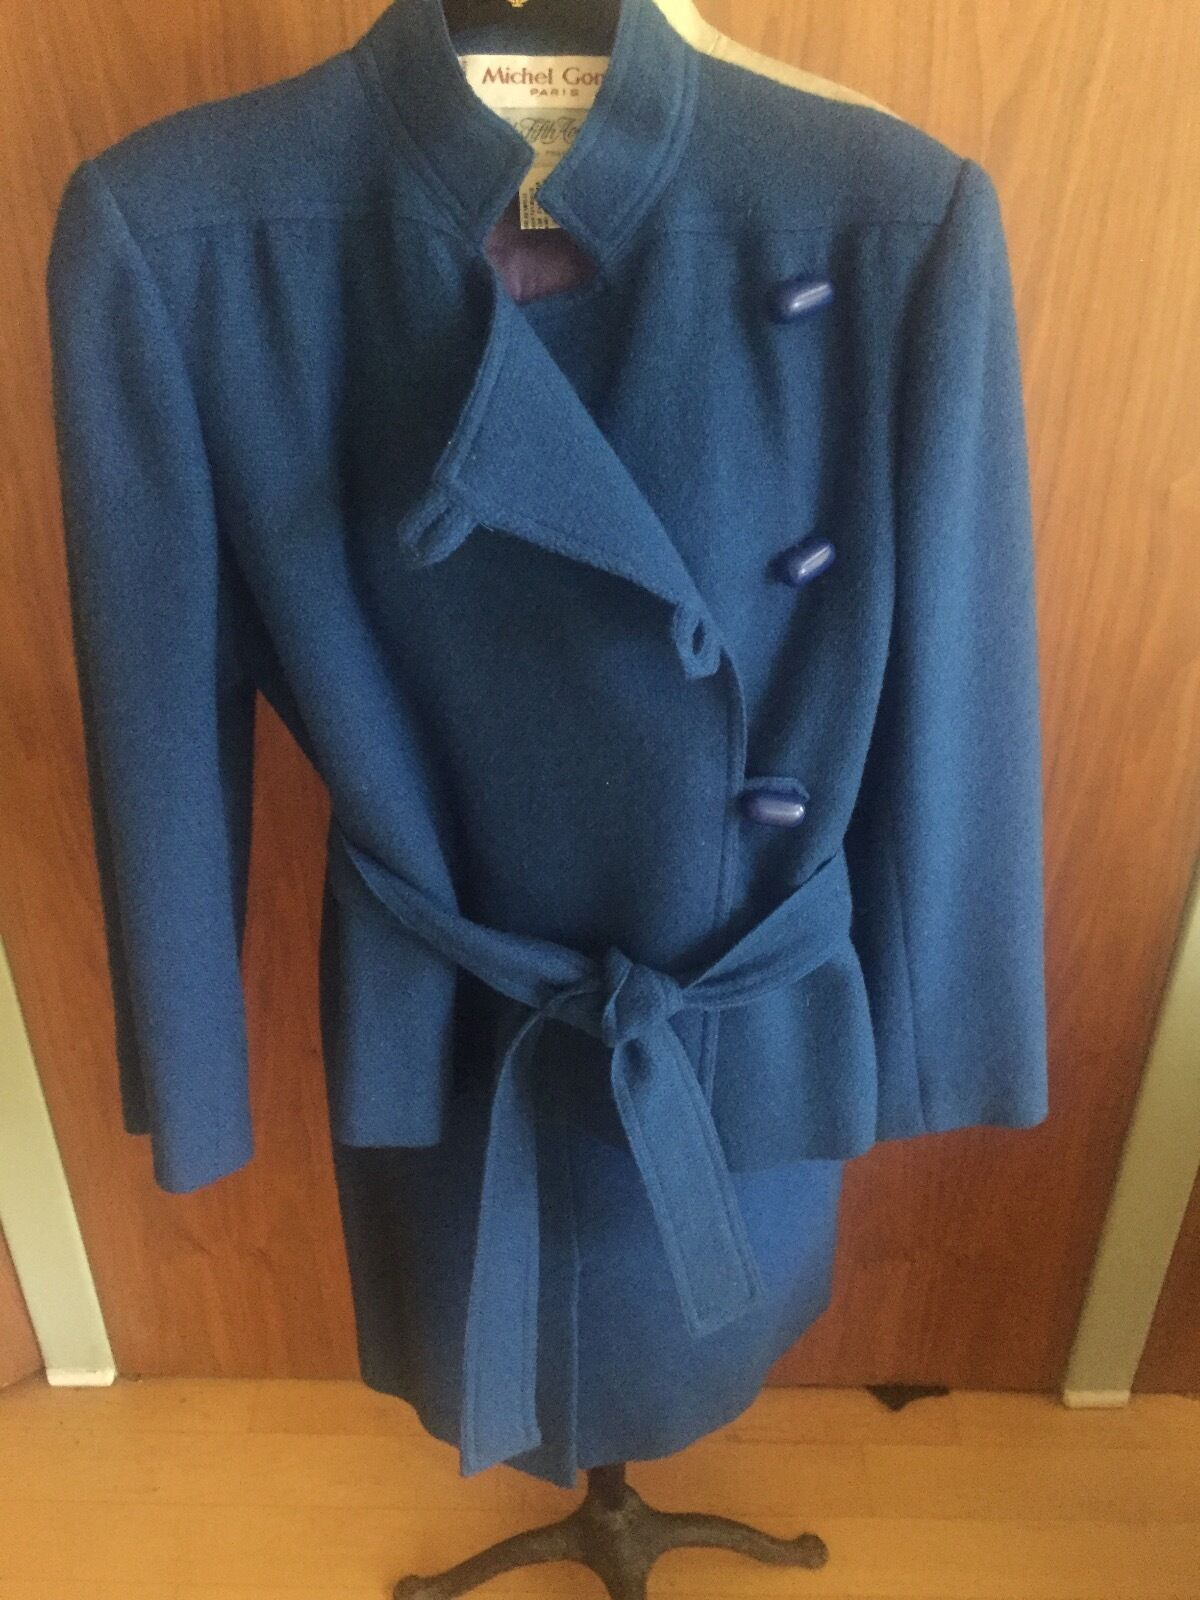 GORGEOUS   Made in Paris, Michel Goma beautiful royal bluee skirt suit  Size 6